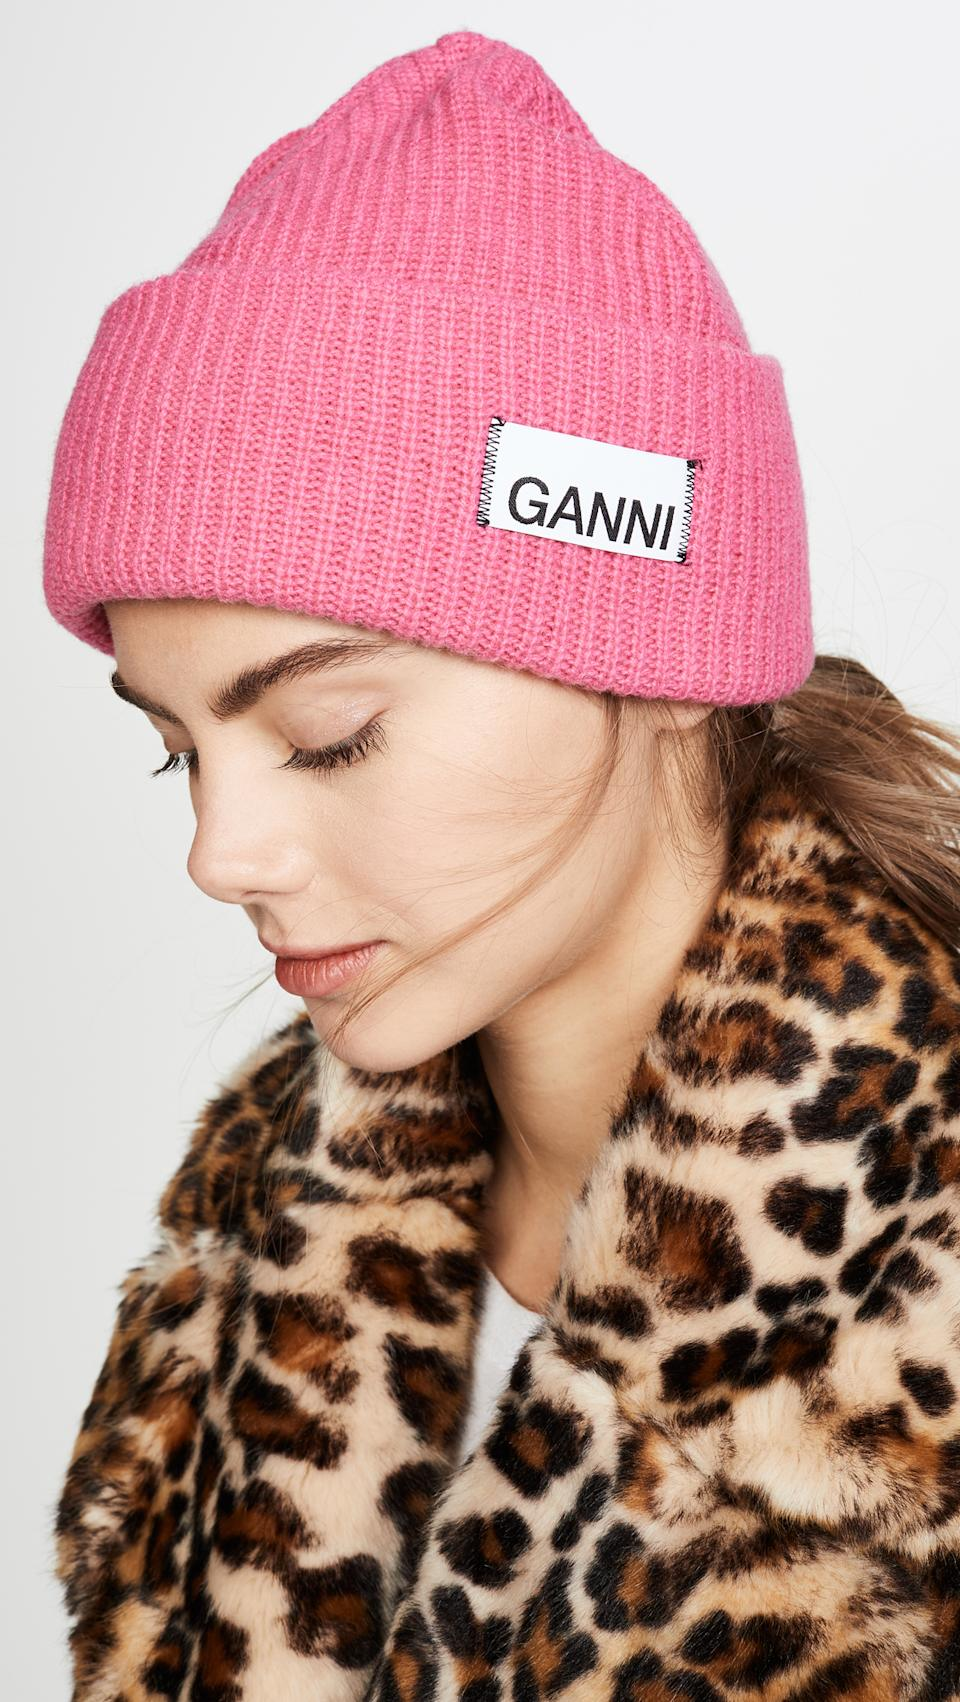 """Always say yes to a pop of color in the form of a cold-weather accessory. """"Heavyweight rib knits in bright and bold colors, like this Ganni style in pink, update the seasonal classic for a must have addition to every winter wardrobe,"""" says Davignon. (Photo: Shopbop) <a href=""""https://fave.co/2Opx1EV"""" rel=""""nofollow noopener"""" target=""""_blank"""" data-ylk=""""slk:SHOP IT:"""" class=""""link rapid-noclick-resp""""><strong>SHOP IT: </strong></a><strong>Ganni Knit Beanie, $100, </strong><a href=""""https://fave.co/2Opx1EV"""" rel=""""nofollow noopener"""" target=""""_blank"""" data-ylk=""""slk:shopbop.com"""" class=""""link rapid-noclick-resp""""><strong>shopbop.com</strong></a>"""